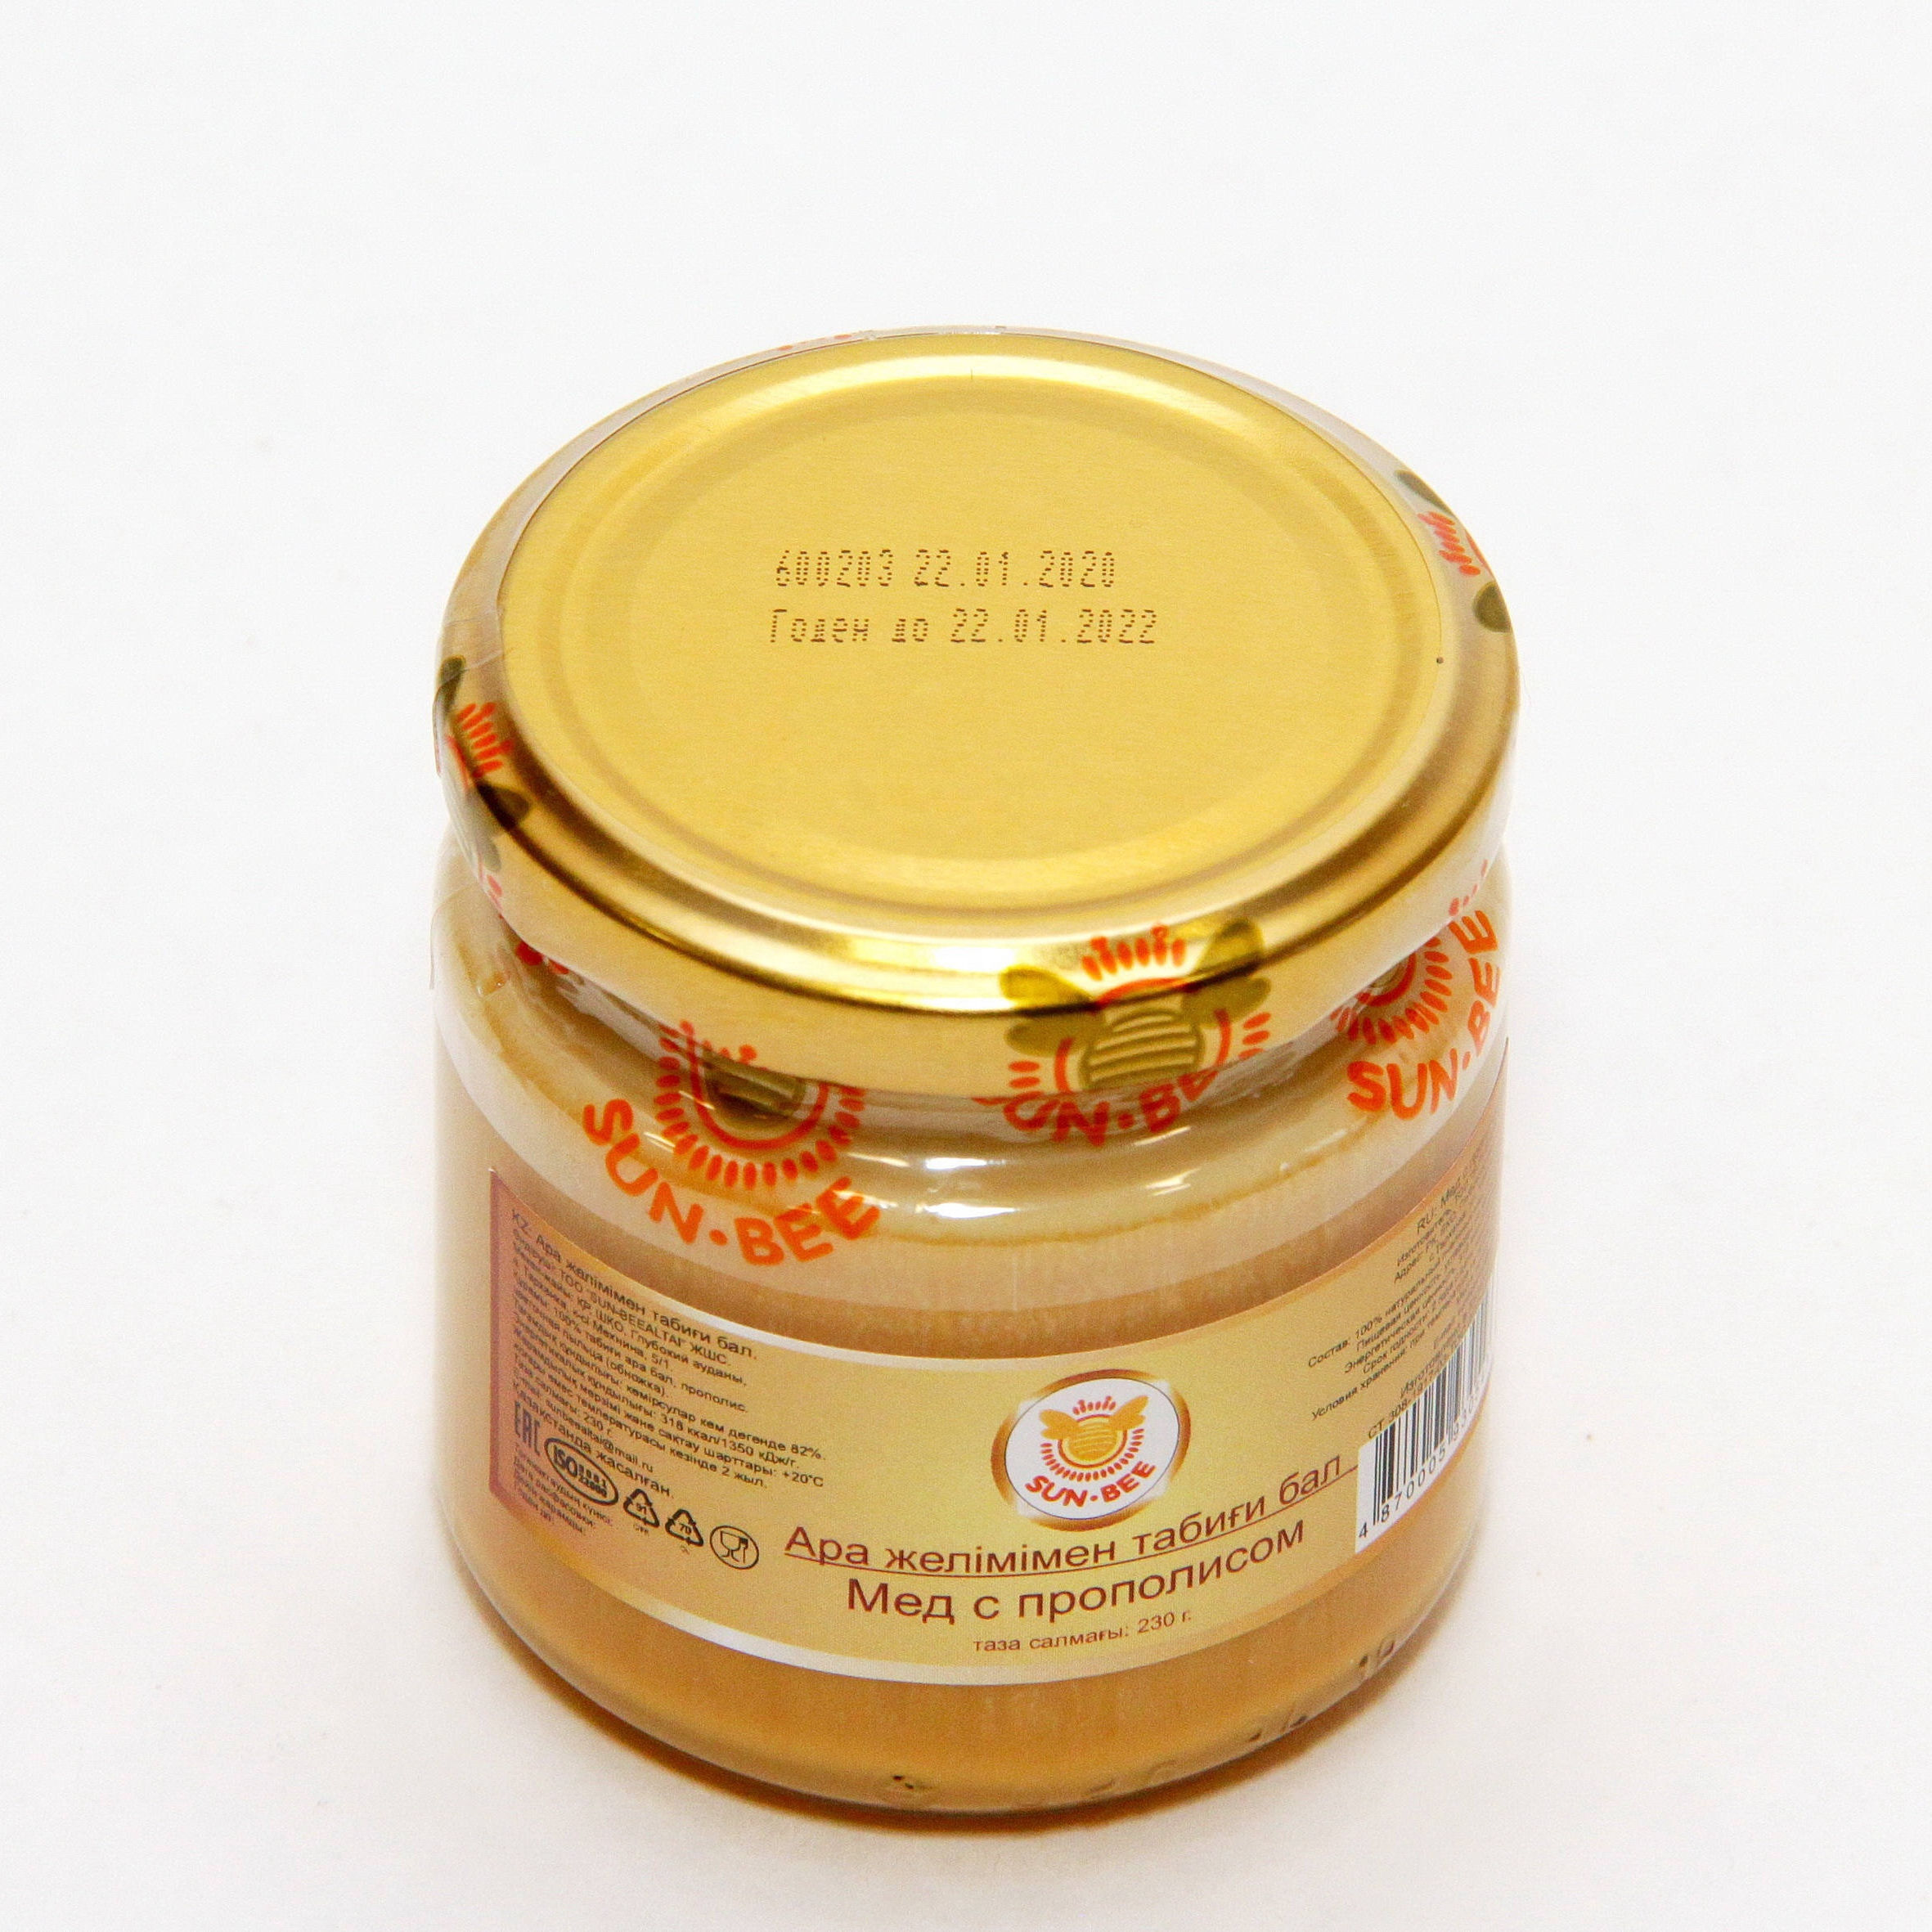 High quality Altai Blossom 230 gr Natural Pure Flower Bee Honey with Propolis